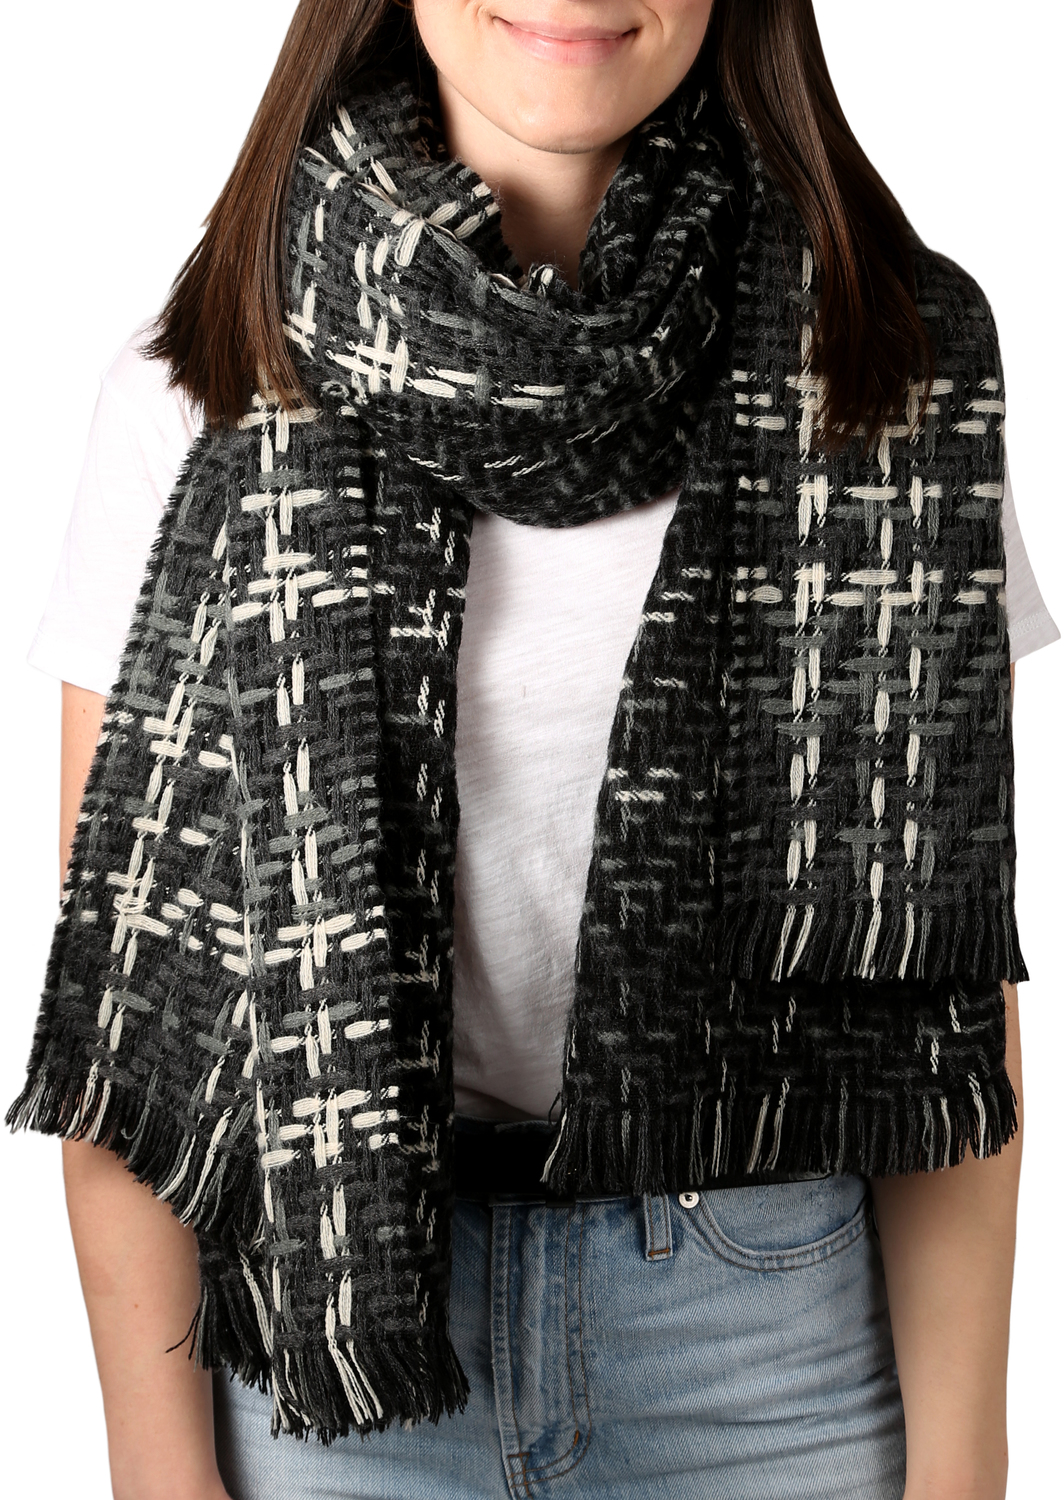 "Subtle Smoke by H2Z Scarves - Subtle Smoke - 78"" x 26"" Woven Scarf"